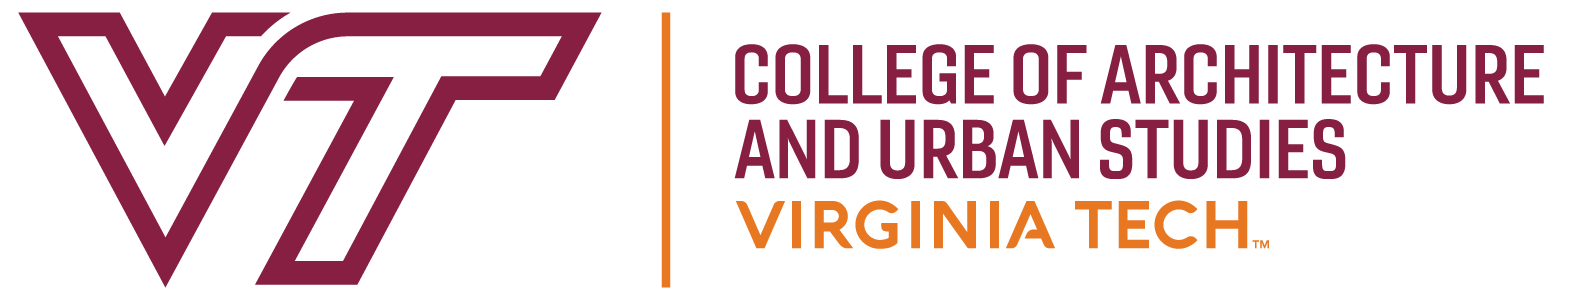 Community Design Assistance Center at Virginia Tech